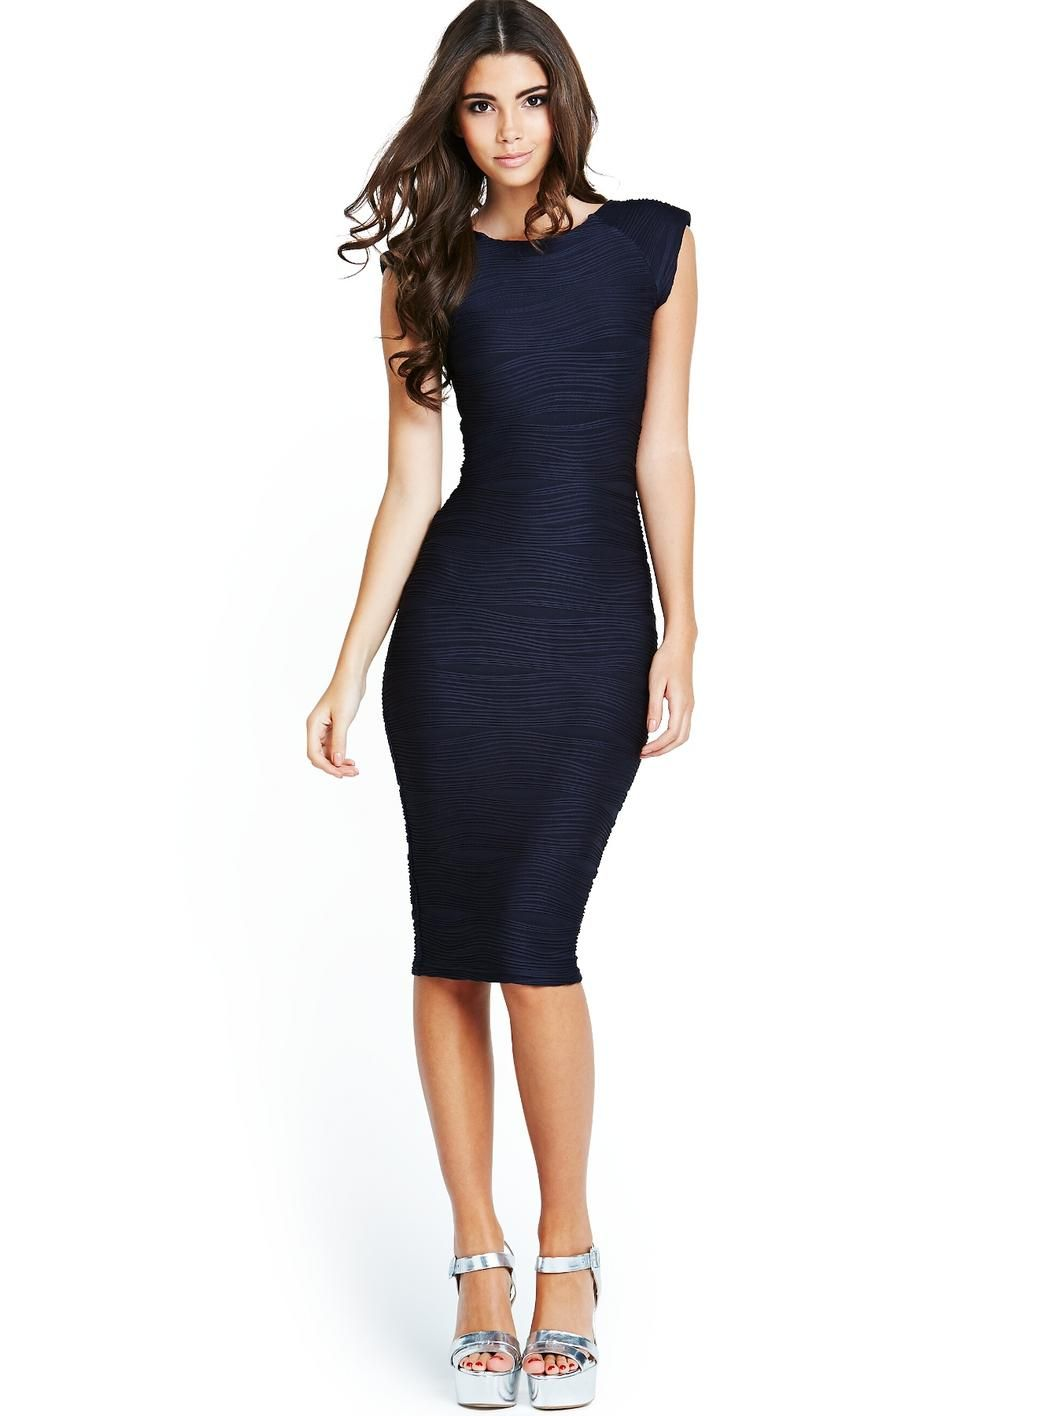 Ripple Midi Dress - Navy, http://www.very.co.uk/ax-paris-ripple-midi ...